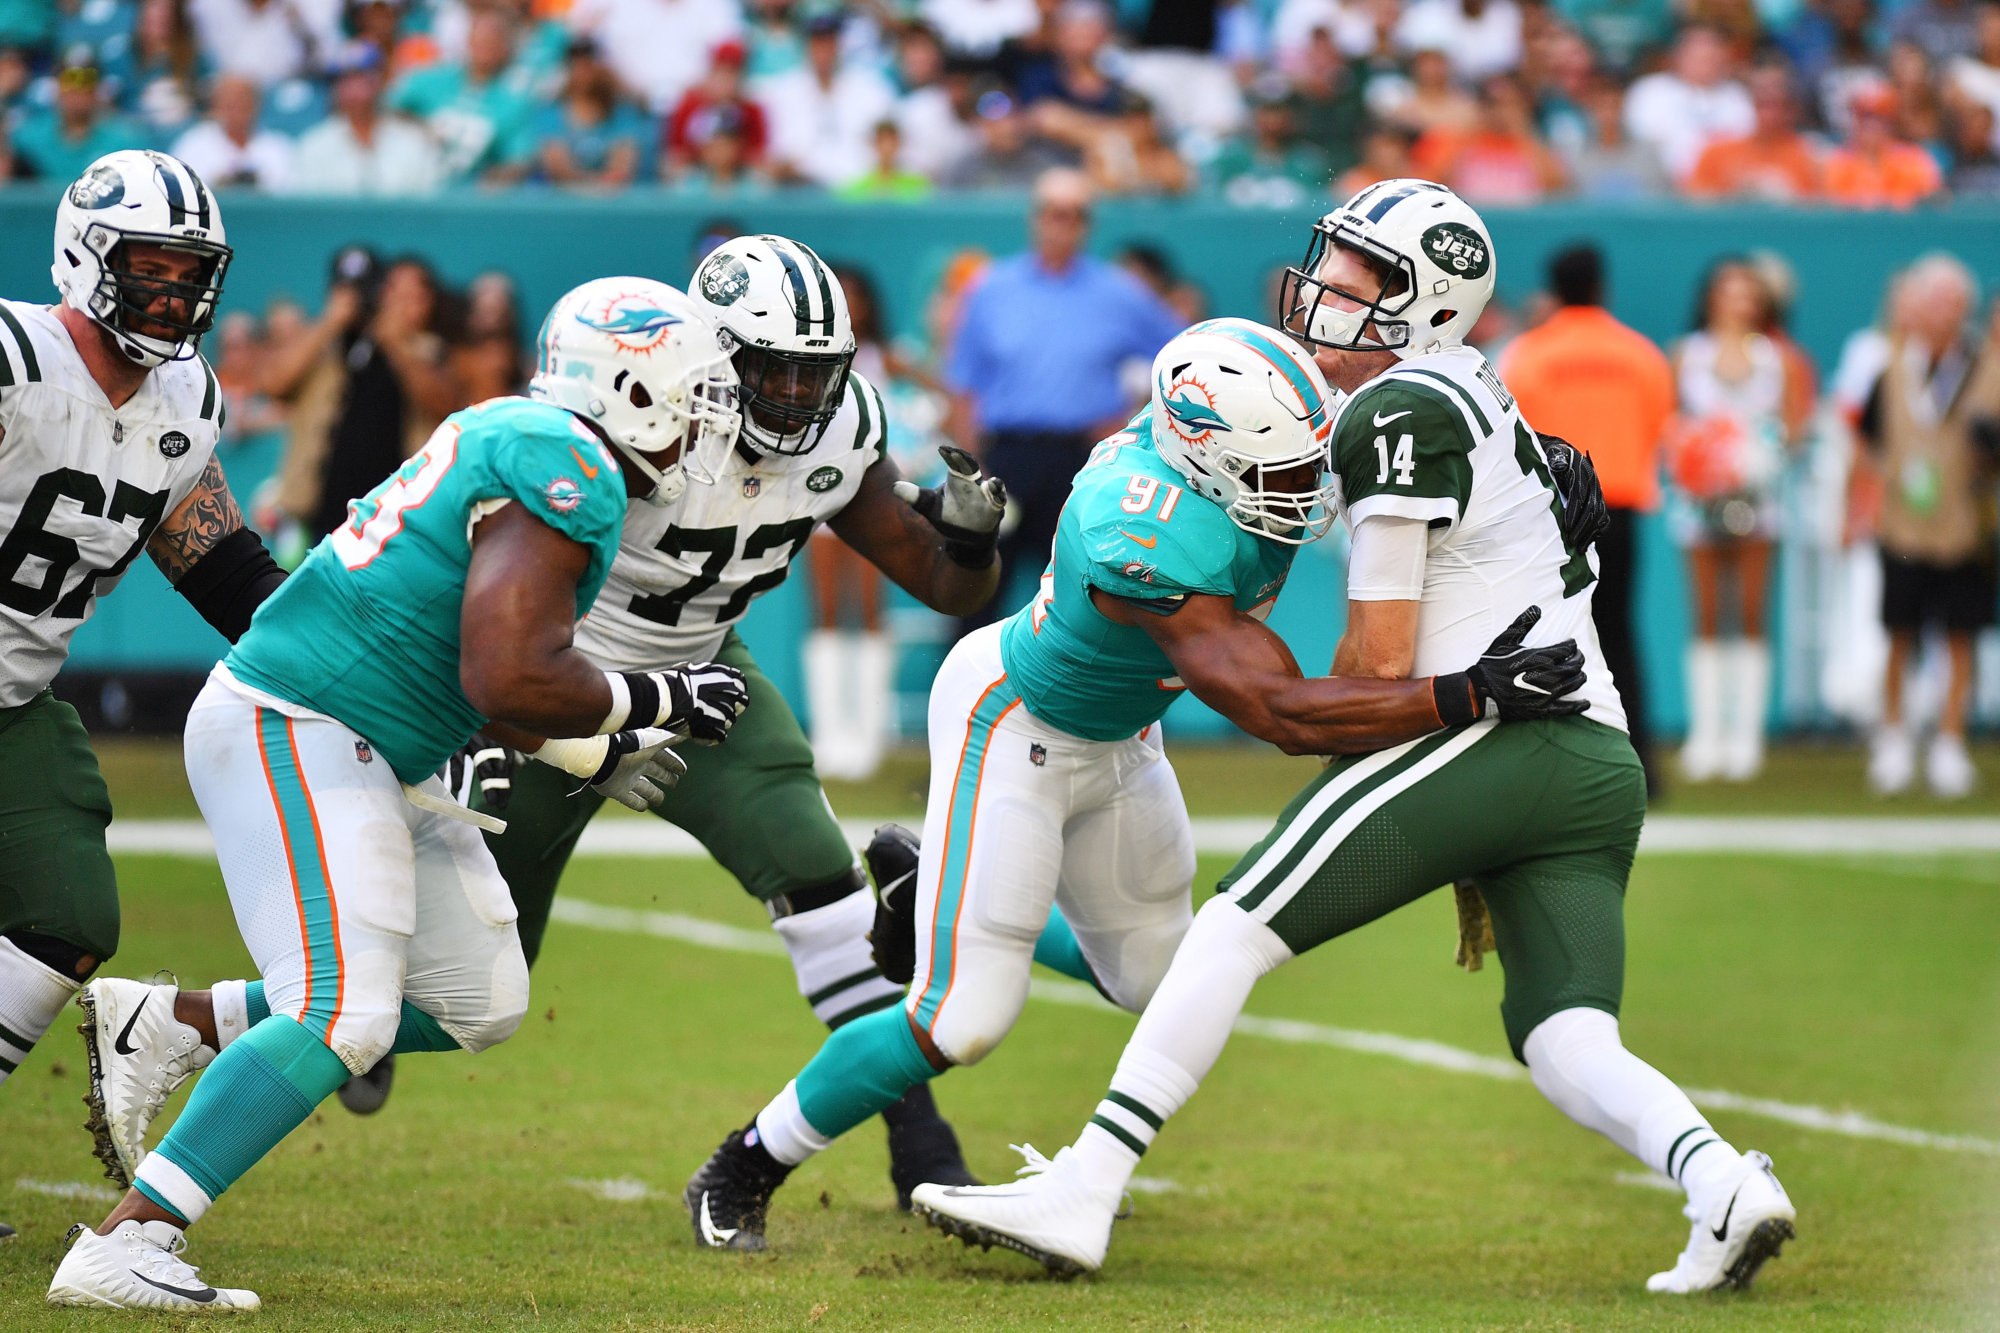 MIAMI, FL - NOVEMBER 04:  Cameron Wake #91 of the Miami Dolphins sacks Sam Darnold #14 of the New York Jets in the second quarter of their game at Hard Rock Stadium on November 4, 2018 in Miami, Florida.  (Photo by Mark Brown/Getty Images)